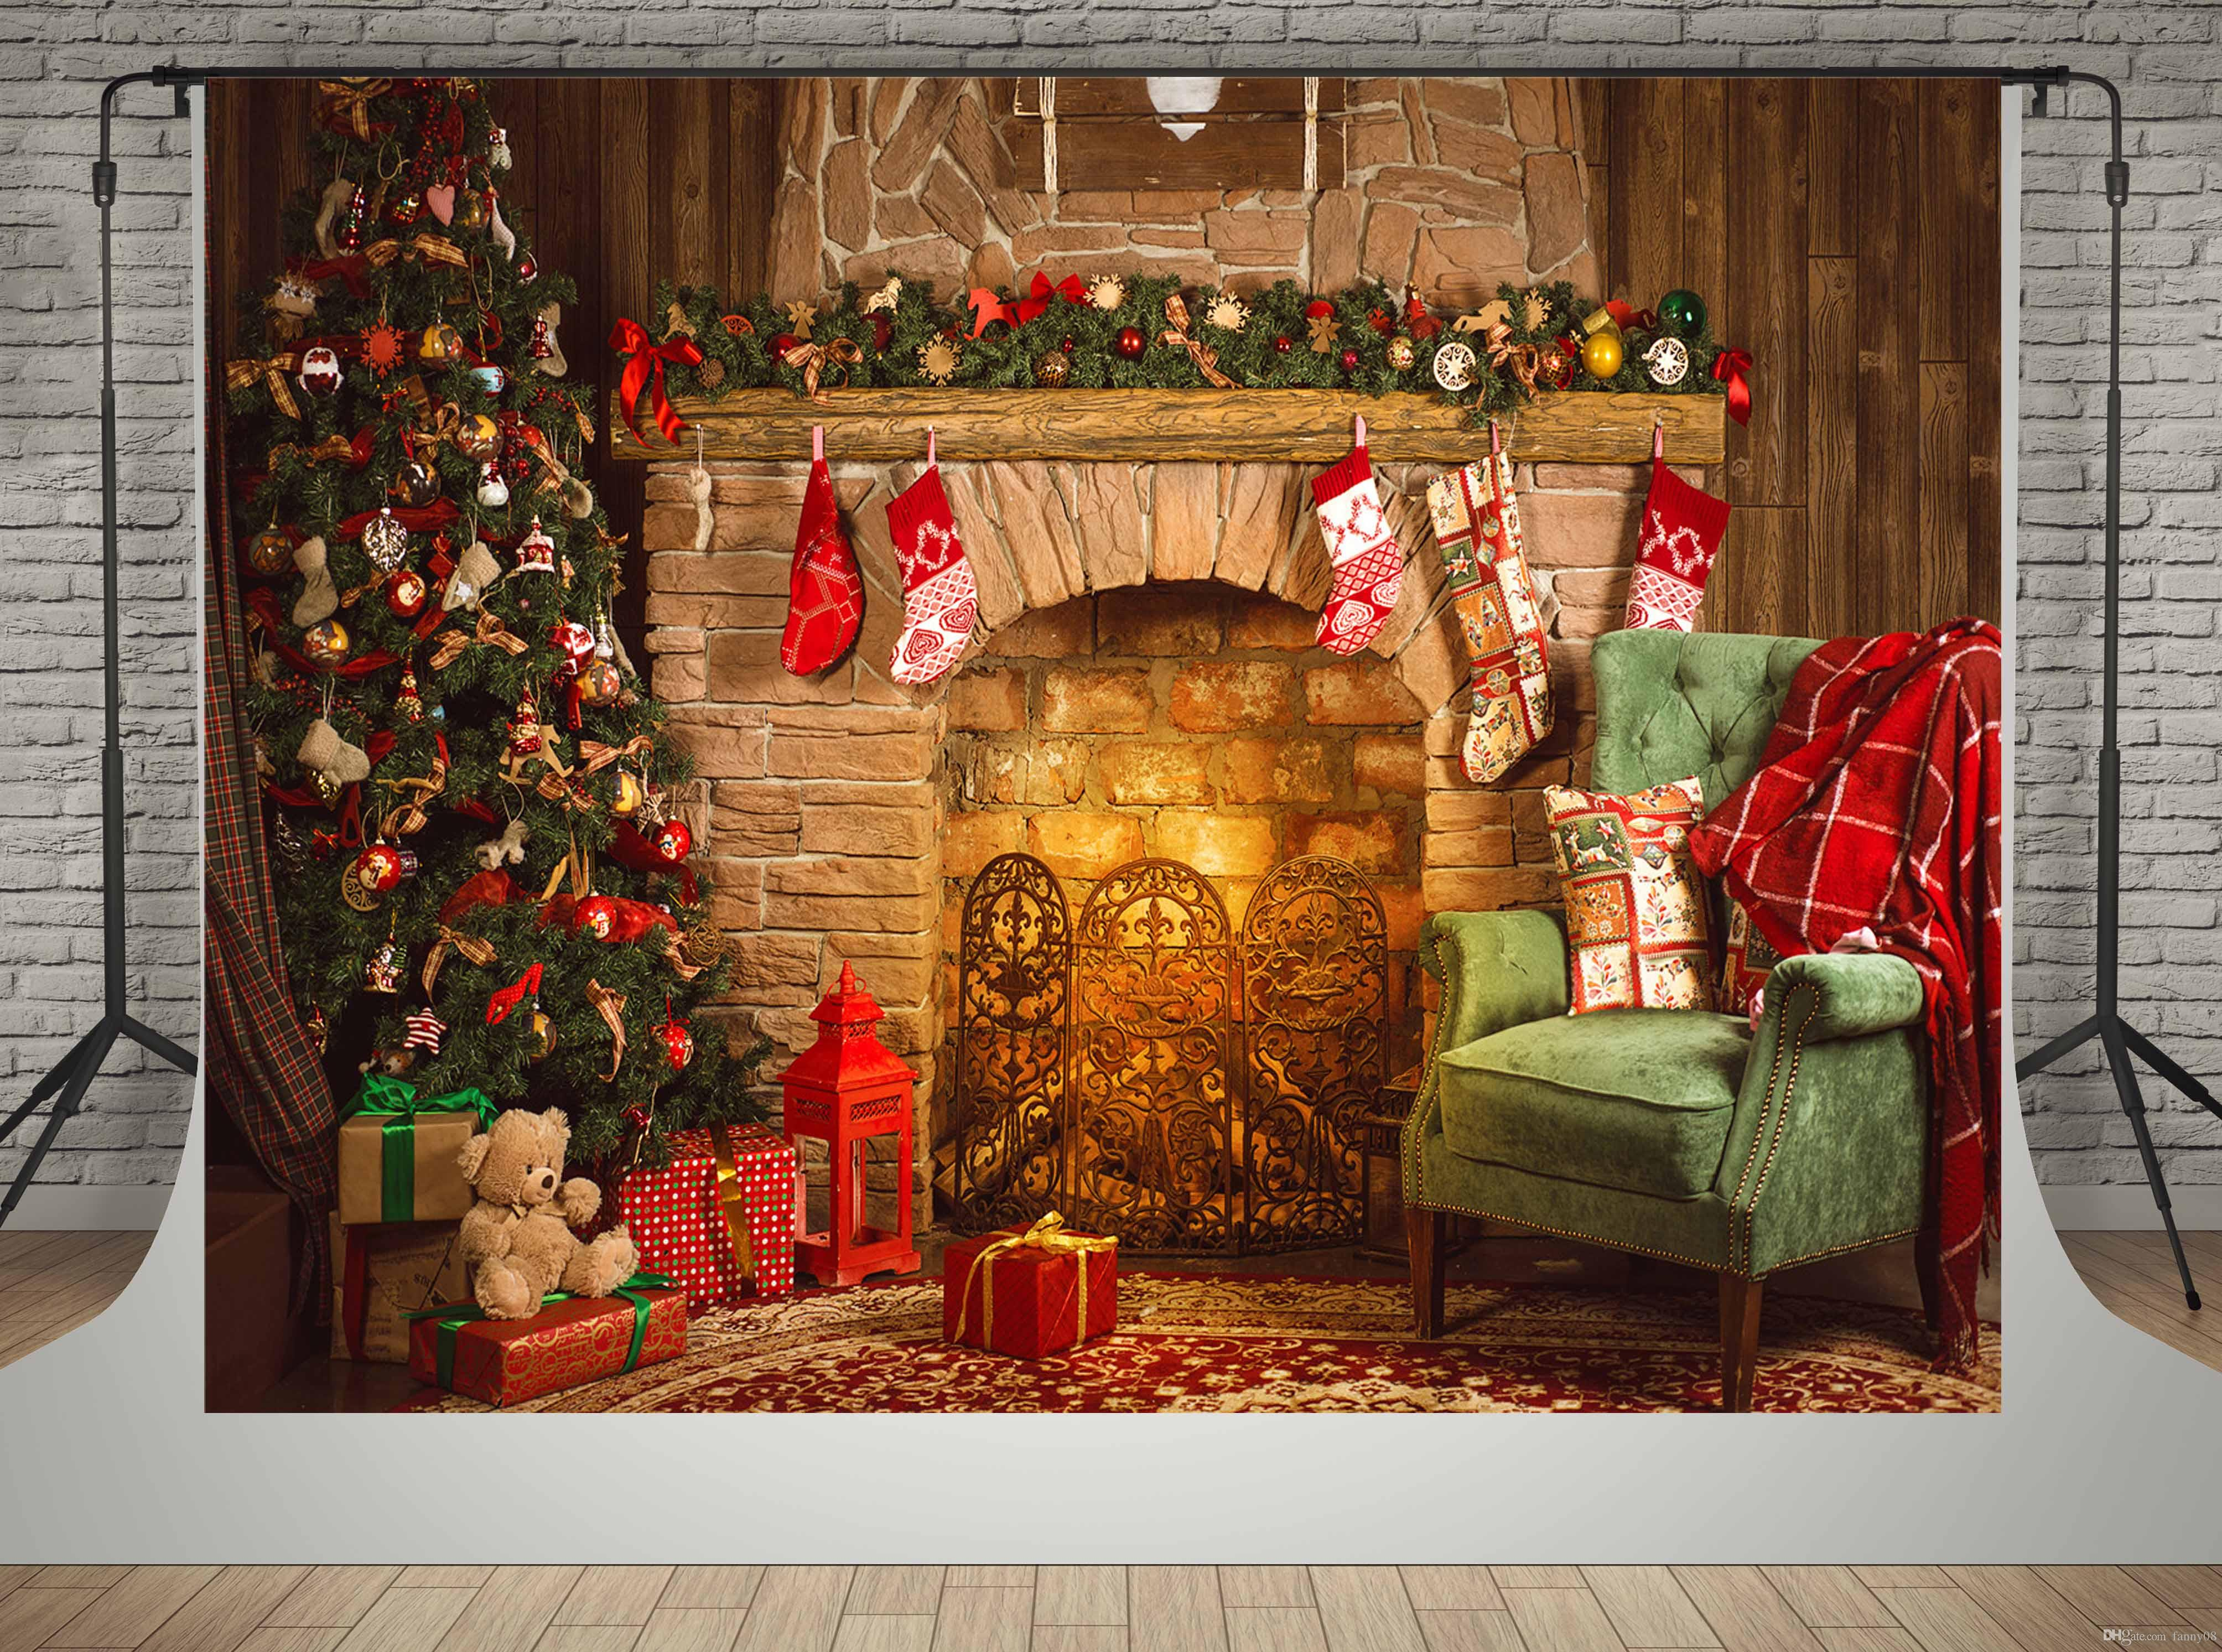 kate microfiber material backdrops for photographer brick fireplace background night christmas tree photo booth props christmas photo backdrops christmas